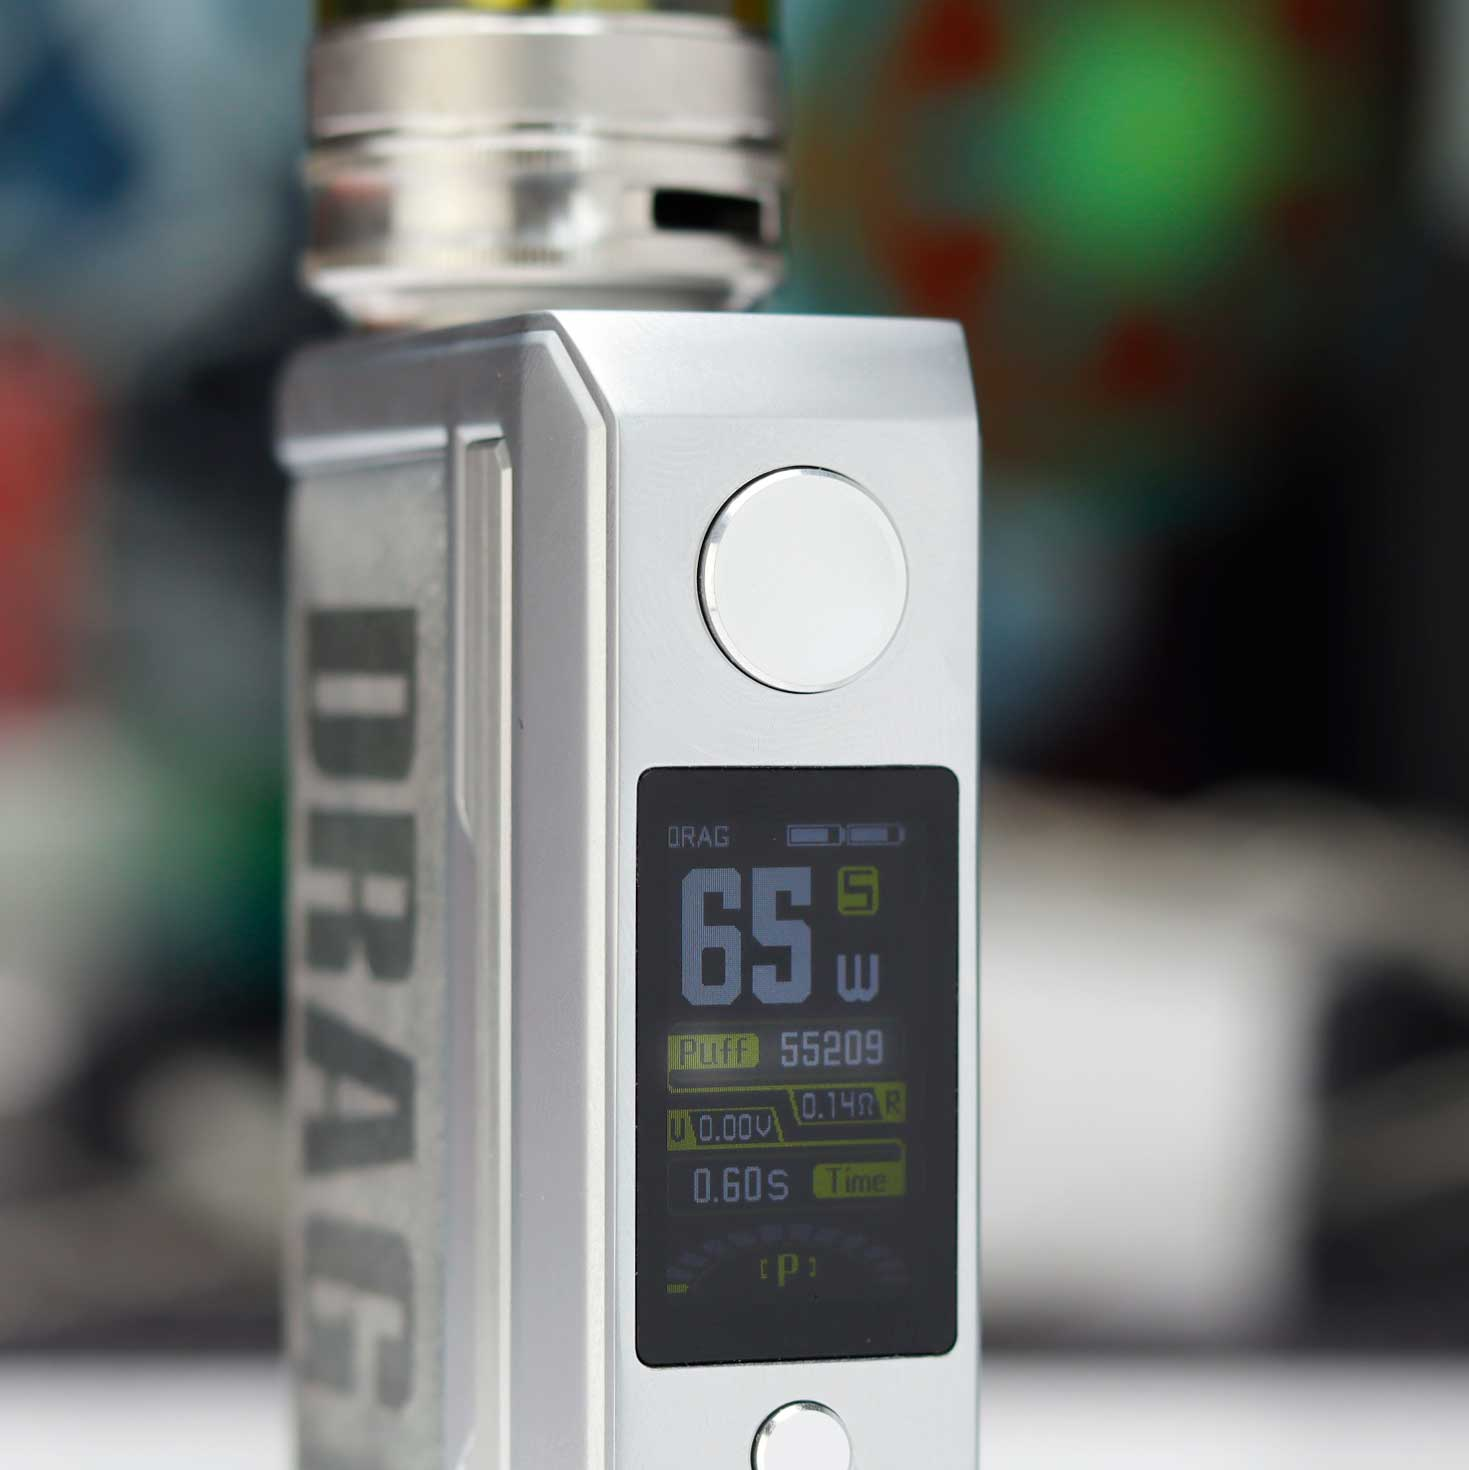 Voopoo Drag 3 puff counter